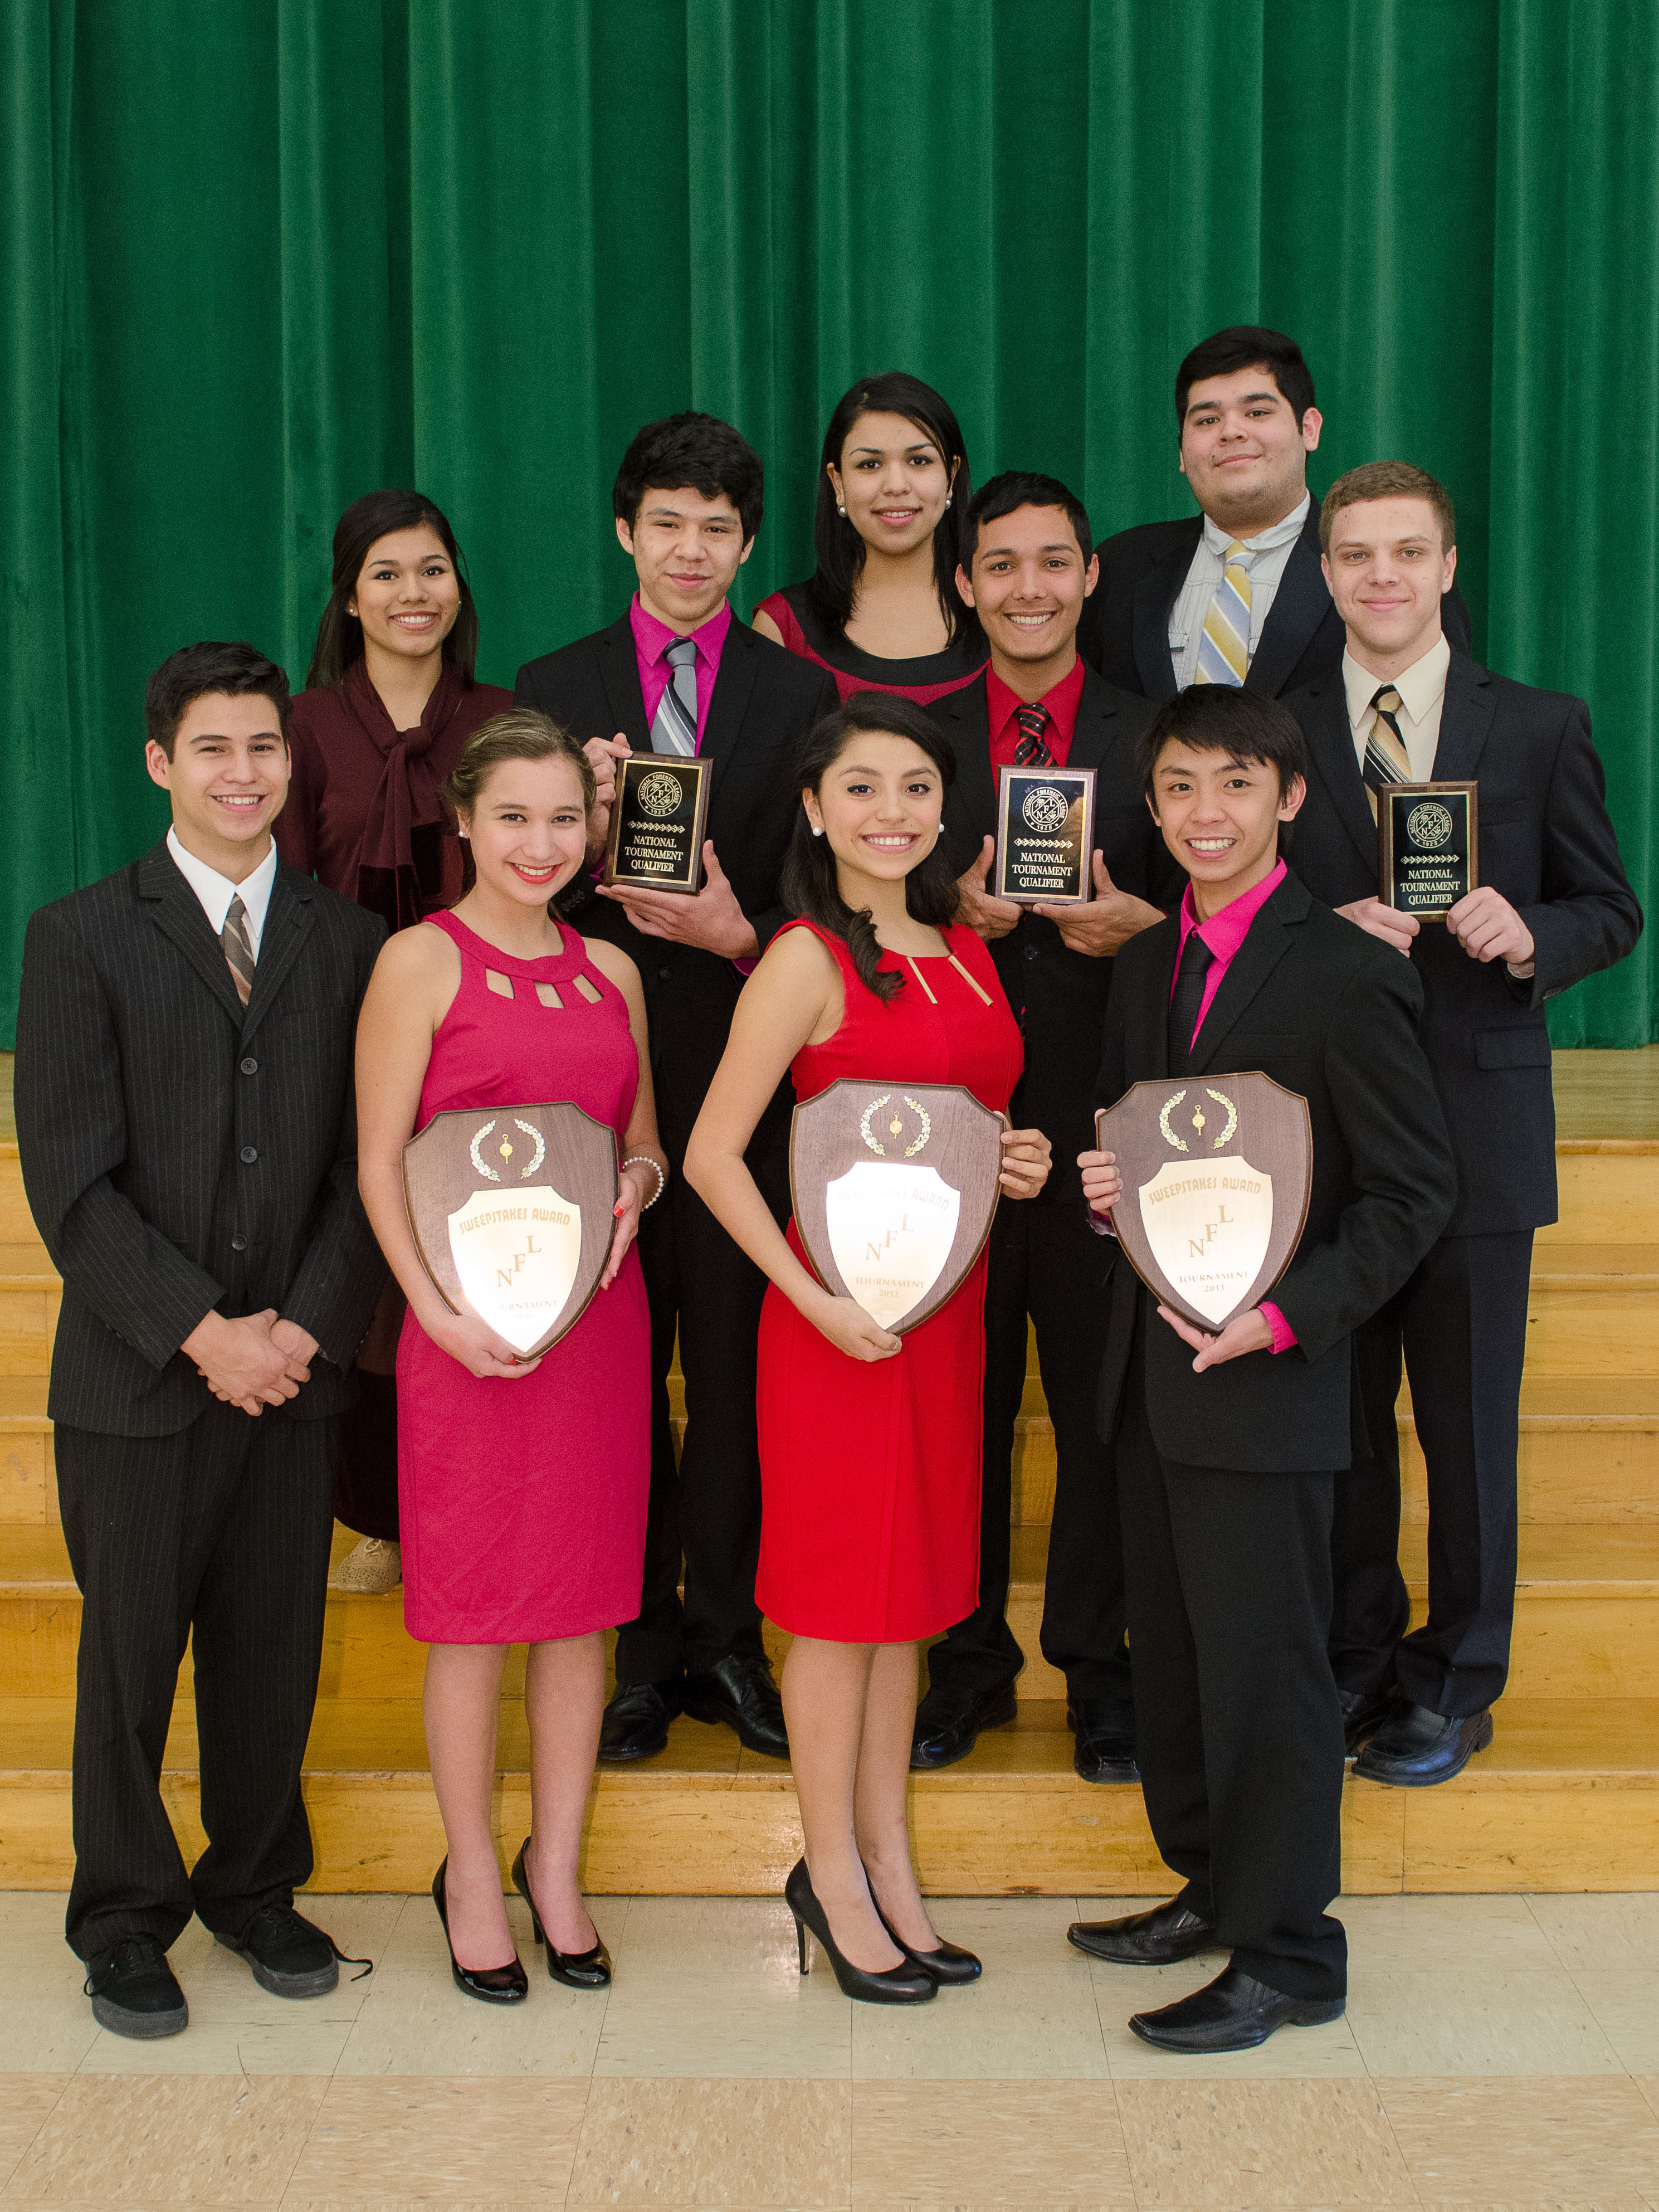 HHSS Speech, Drama and Debate team awarded sweepstakes at national competition